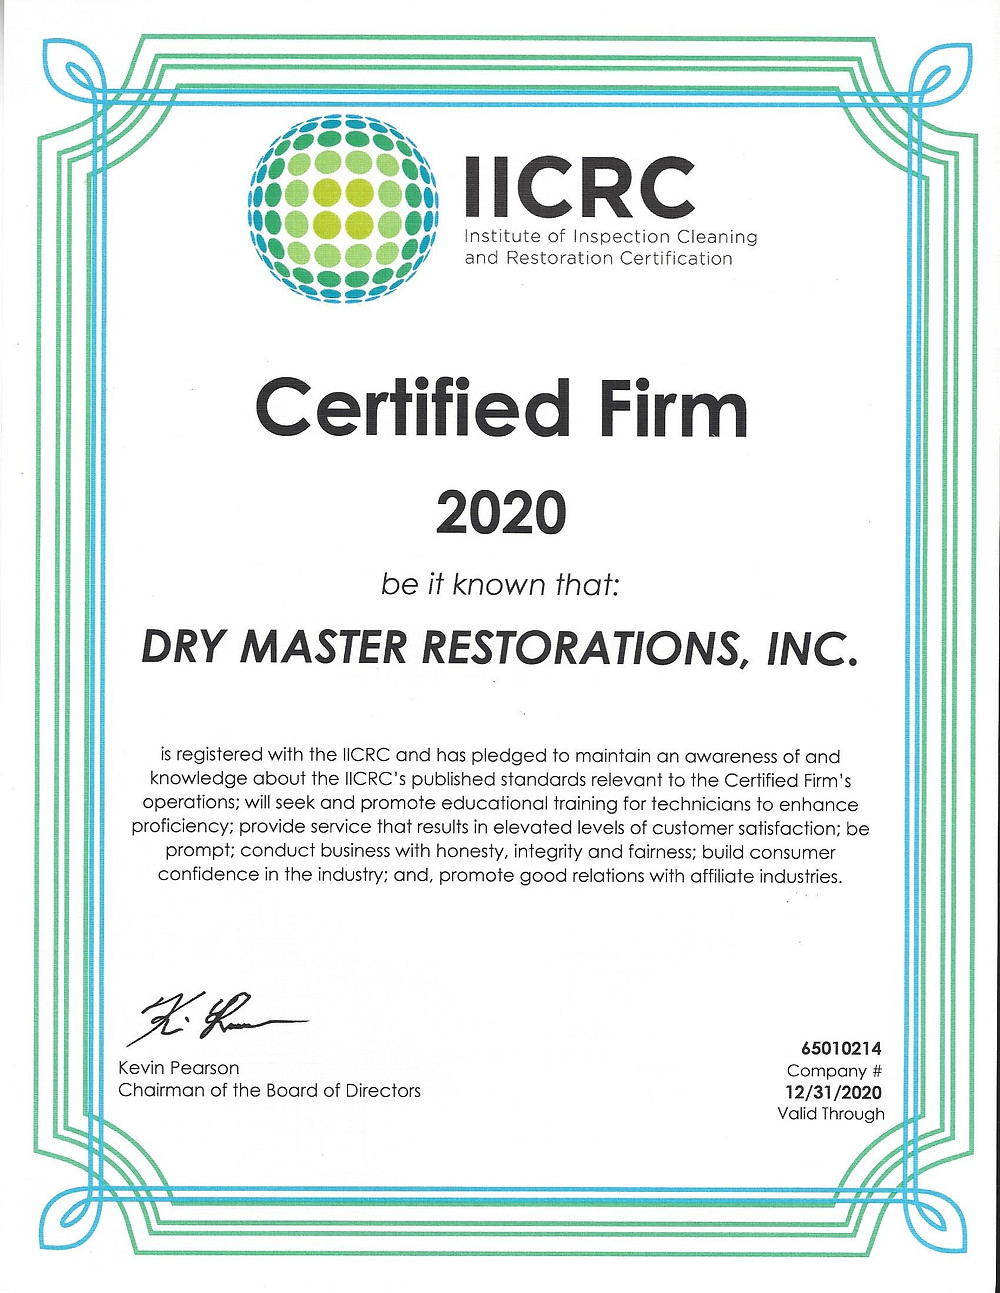 certificate that says Certified Firm 2020 Dry Master Restorations, Inc.